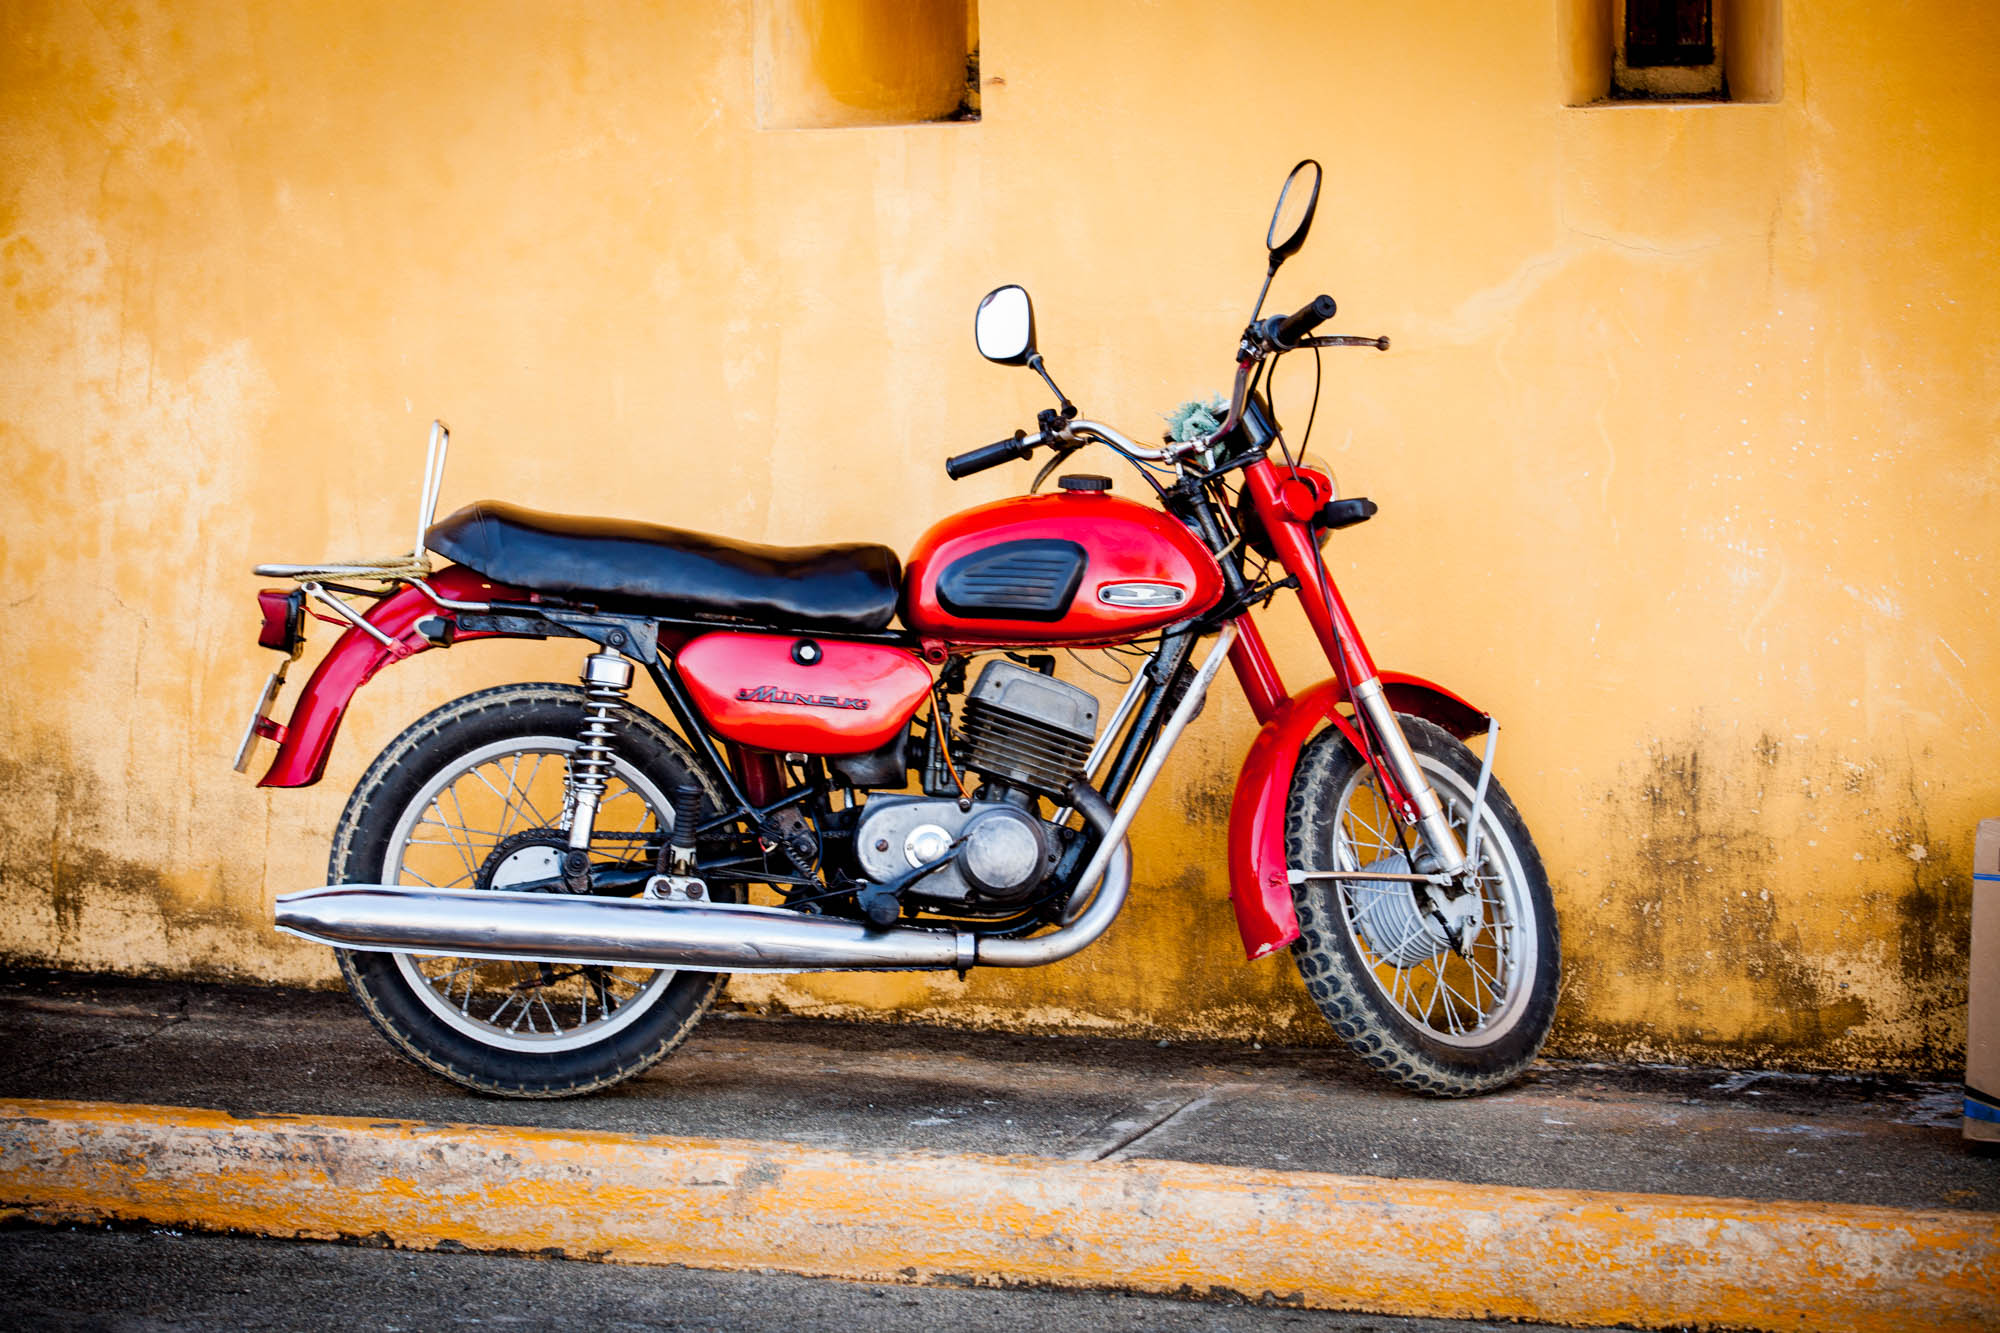 MOTO  Motor bikes throughout Cuba are almost as classic as the cars.